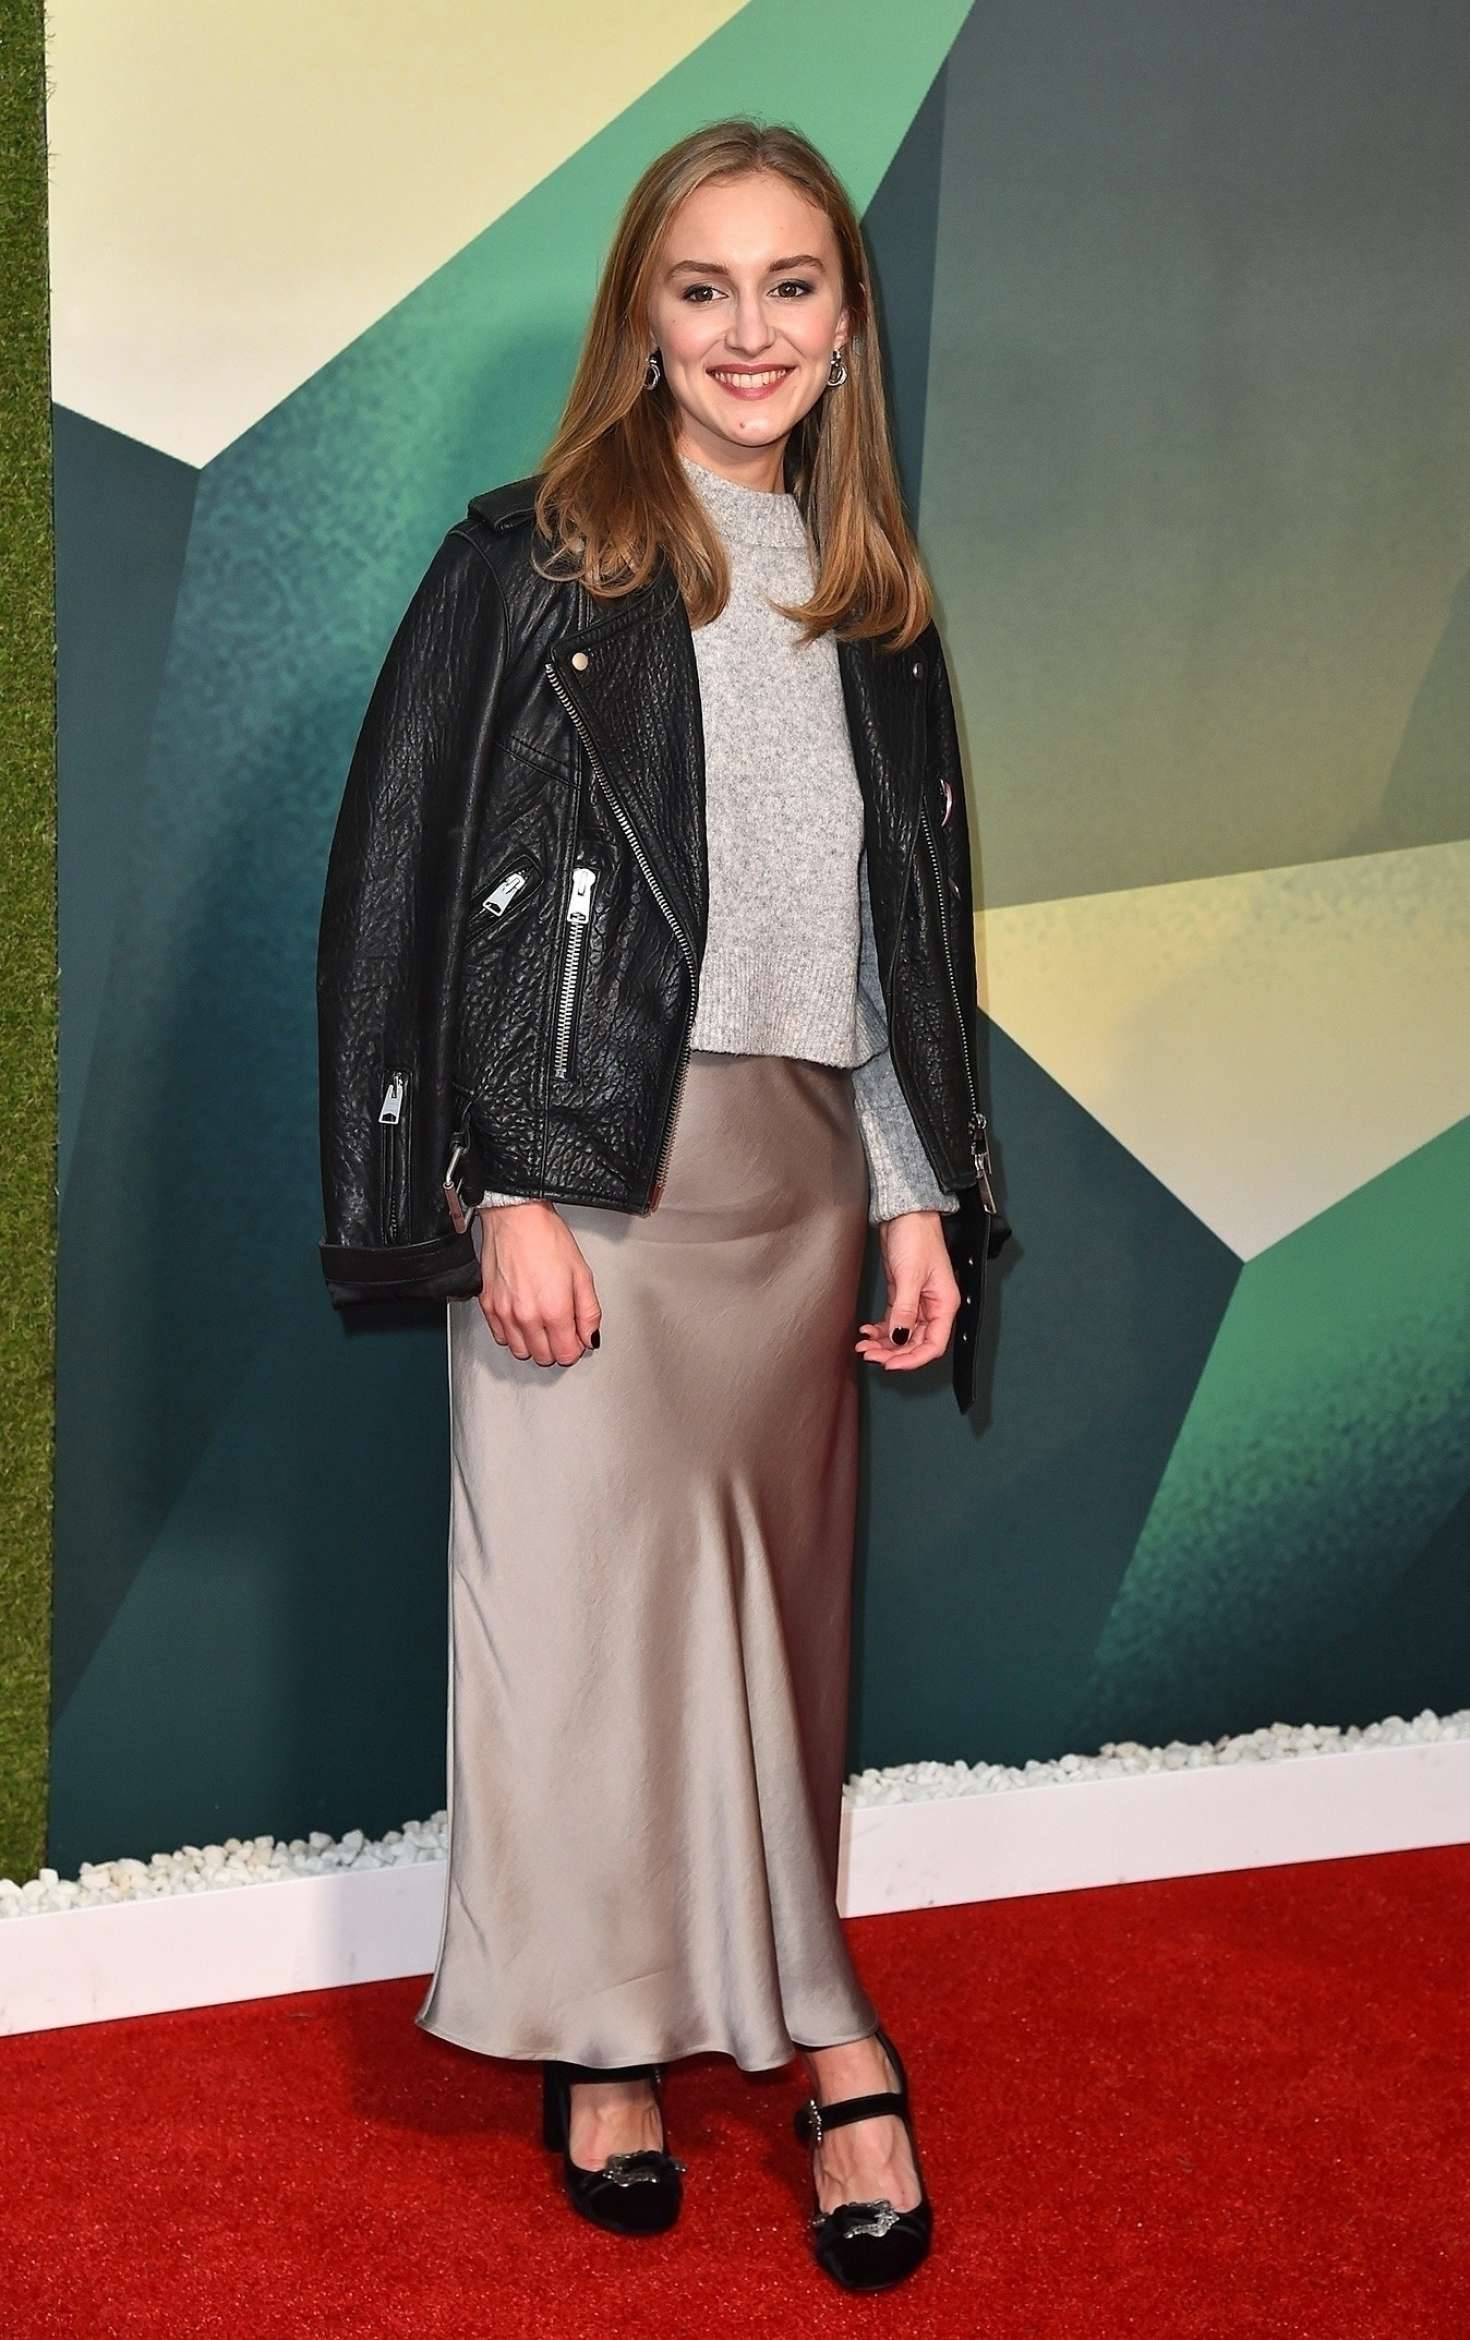 Bethany Muir 2018 : Bethany Muir: The Little Drummer Girl Premiere -03